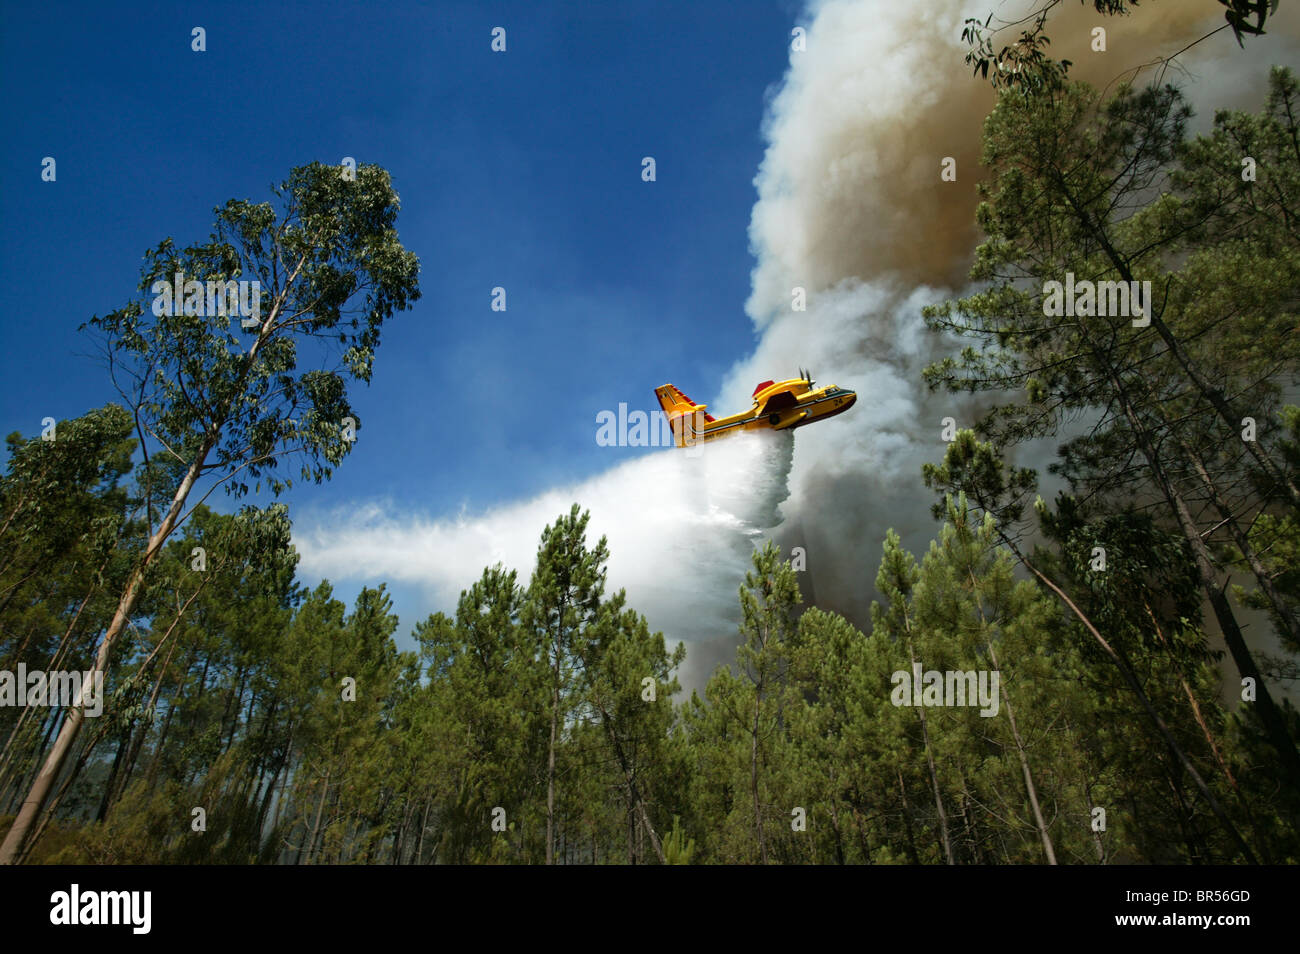 Airplane drops water over a wildfire in central Portugal - Stock Image